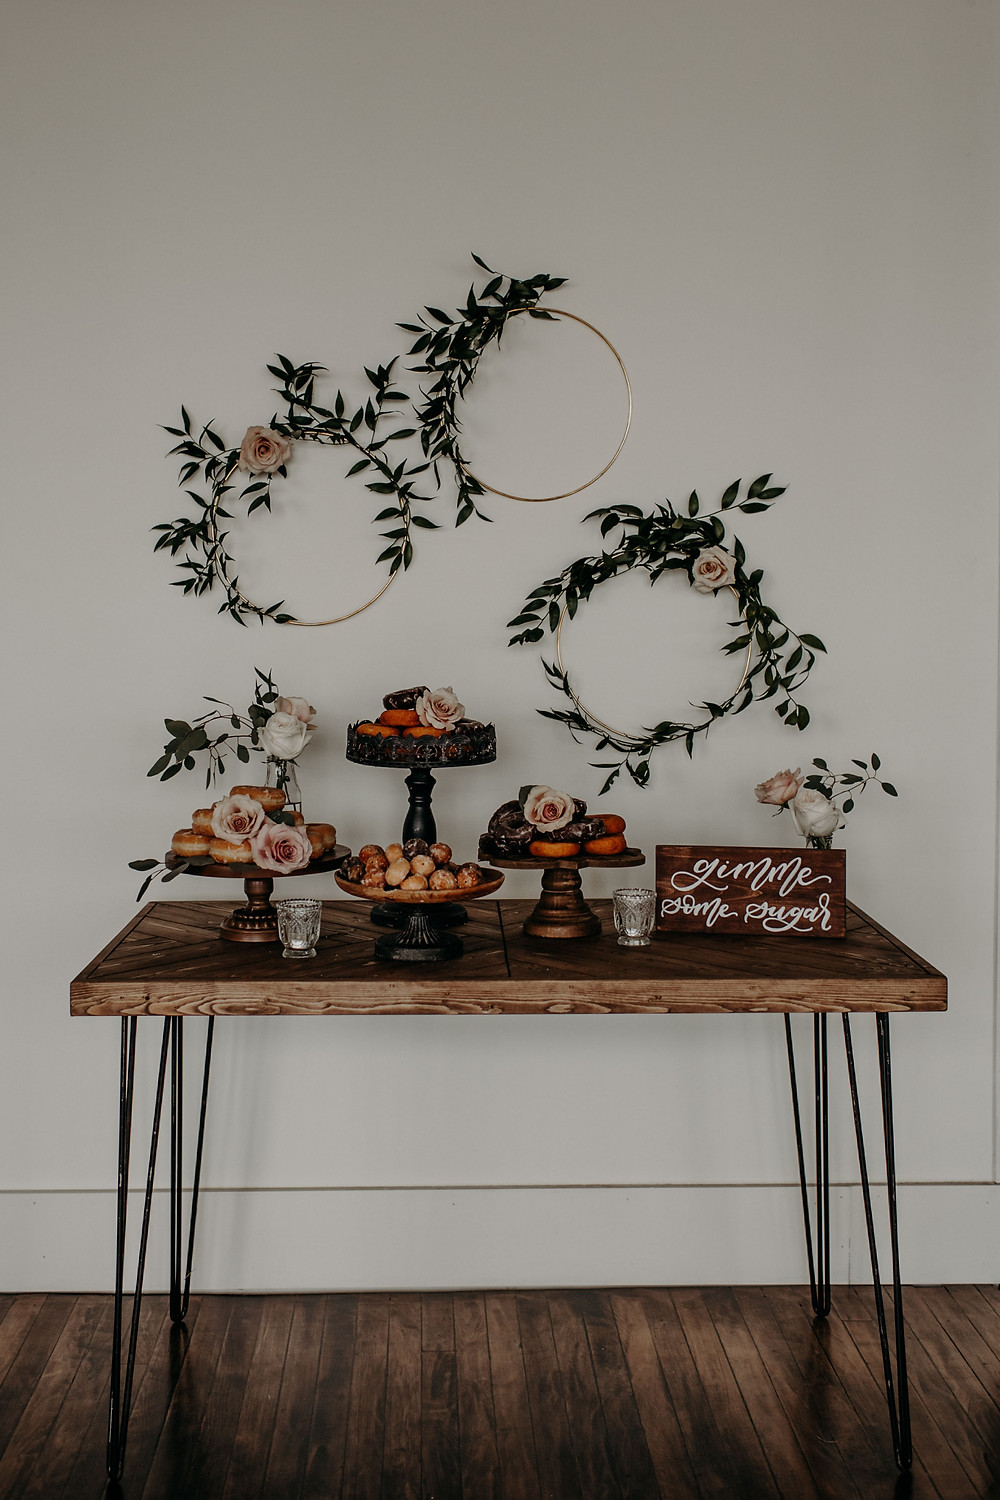 Hairpin farm table donut display: Earthy & Modern Bridal Shower Inspiration by Pretty Little Vintage Co. featured on The Lincoln Loft & Studio blog